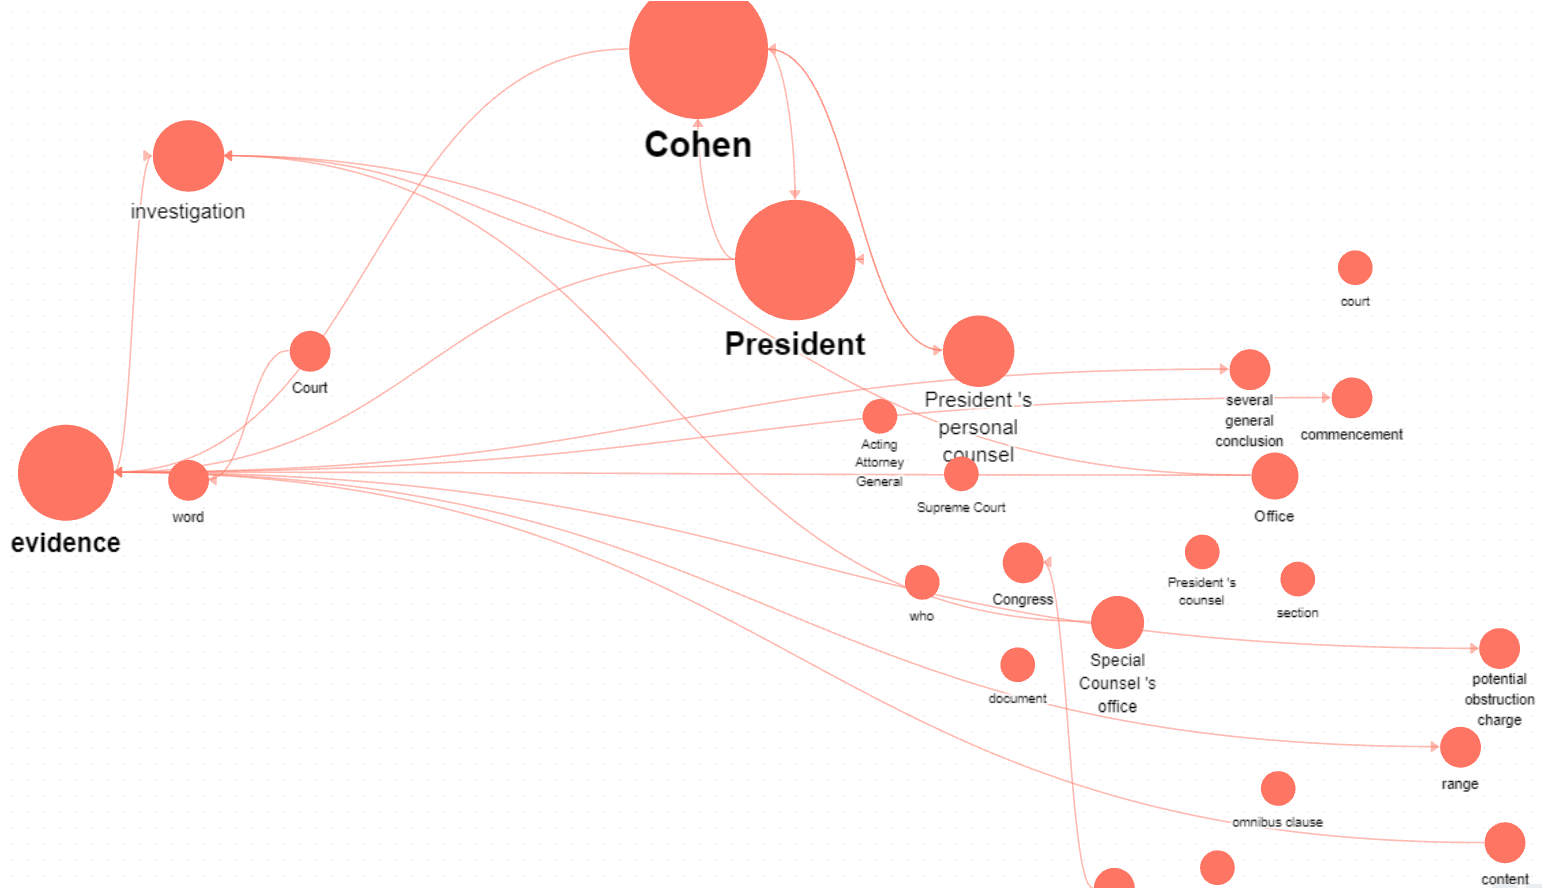 knowledge graph of unstructured text pulled from Mueller's report investigating former President of the United States, Donald J Trump for his dealings in Russia and Ukraine.